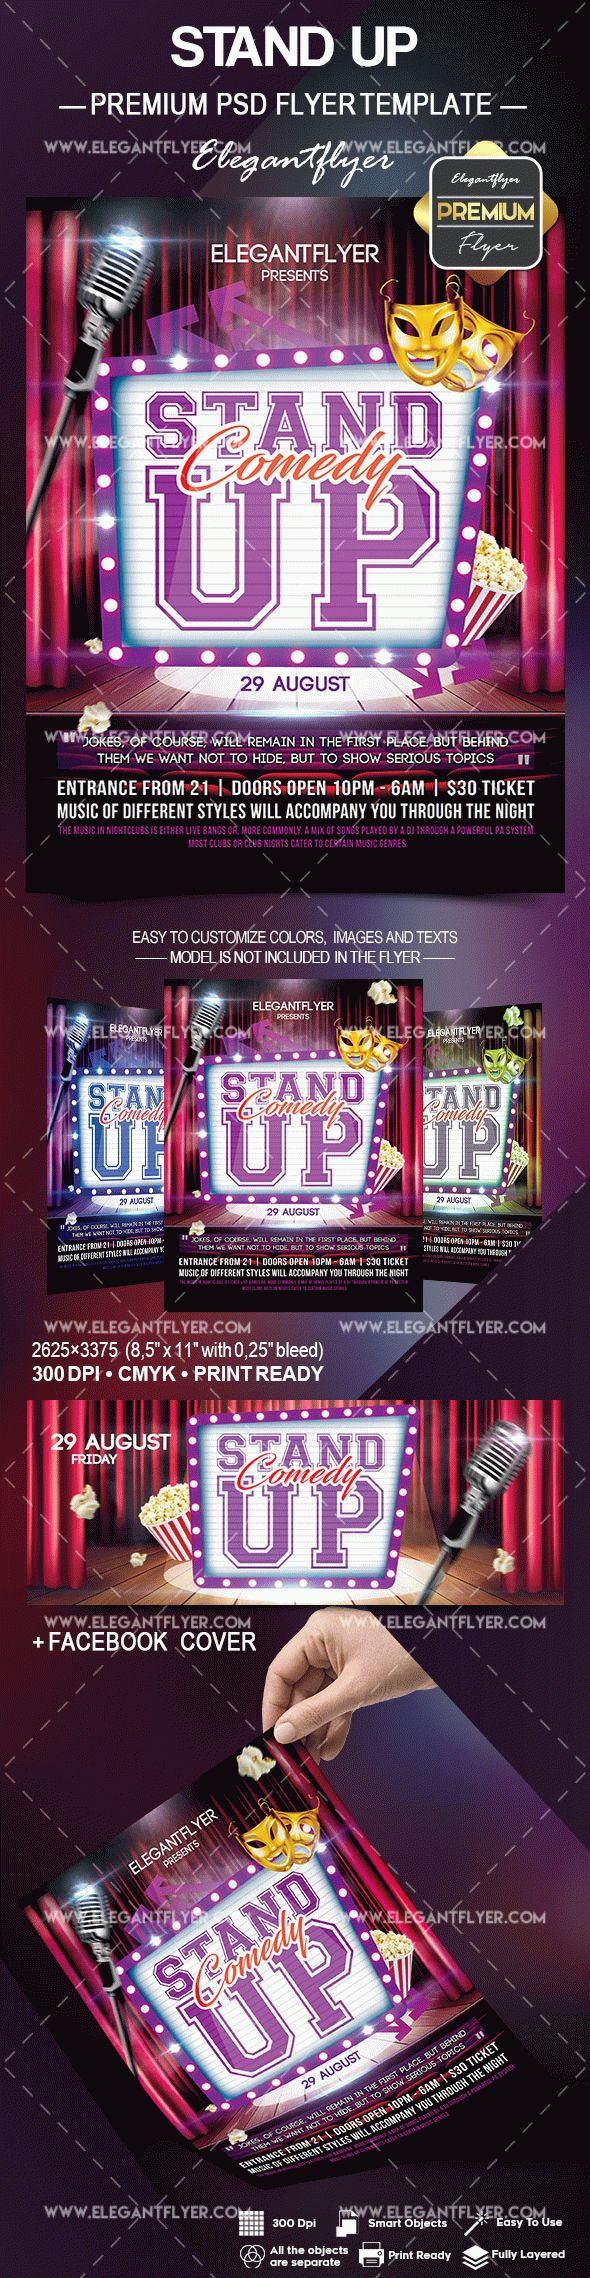 Stand Up Flyer PSD Template